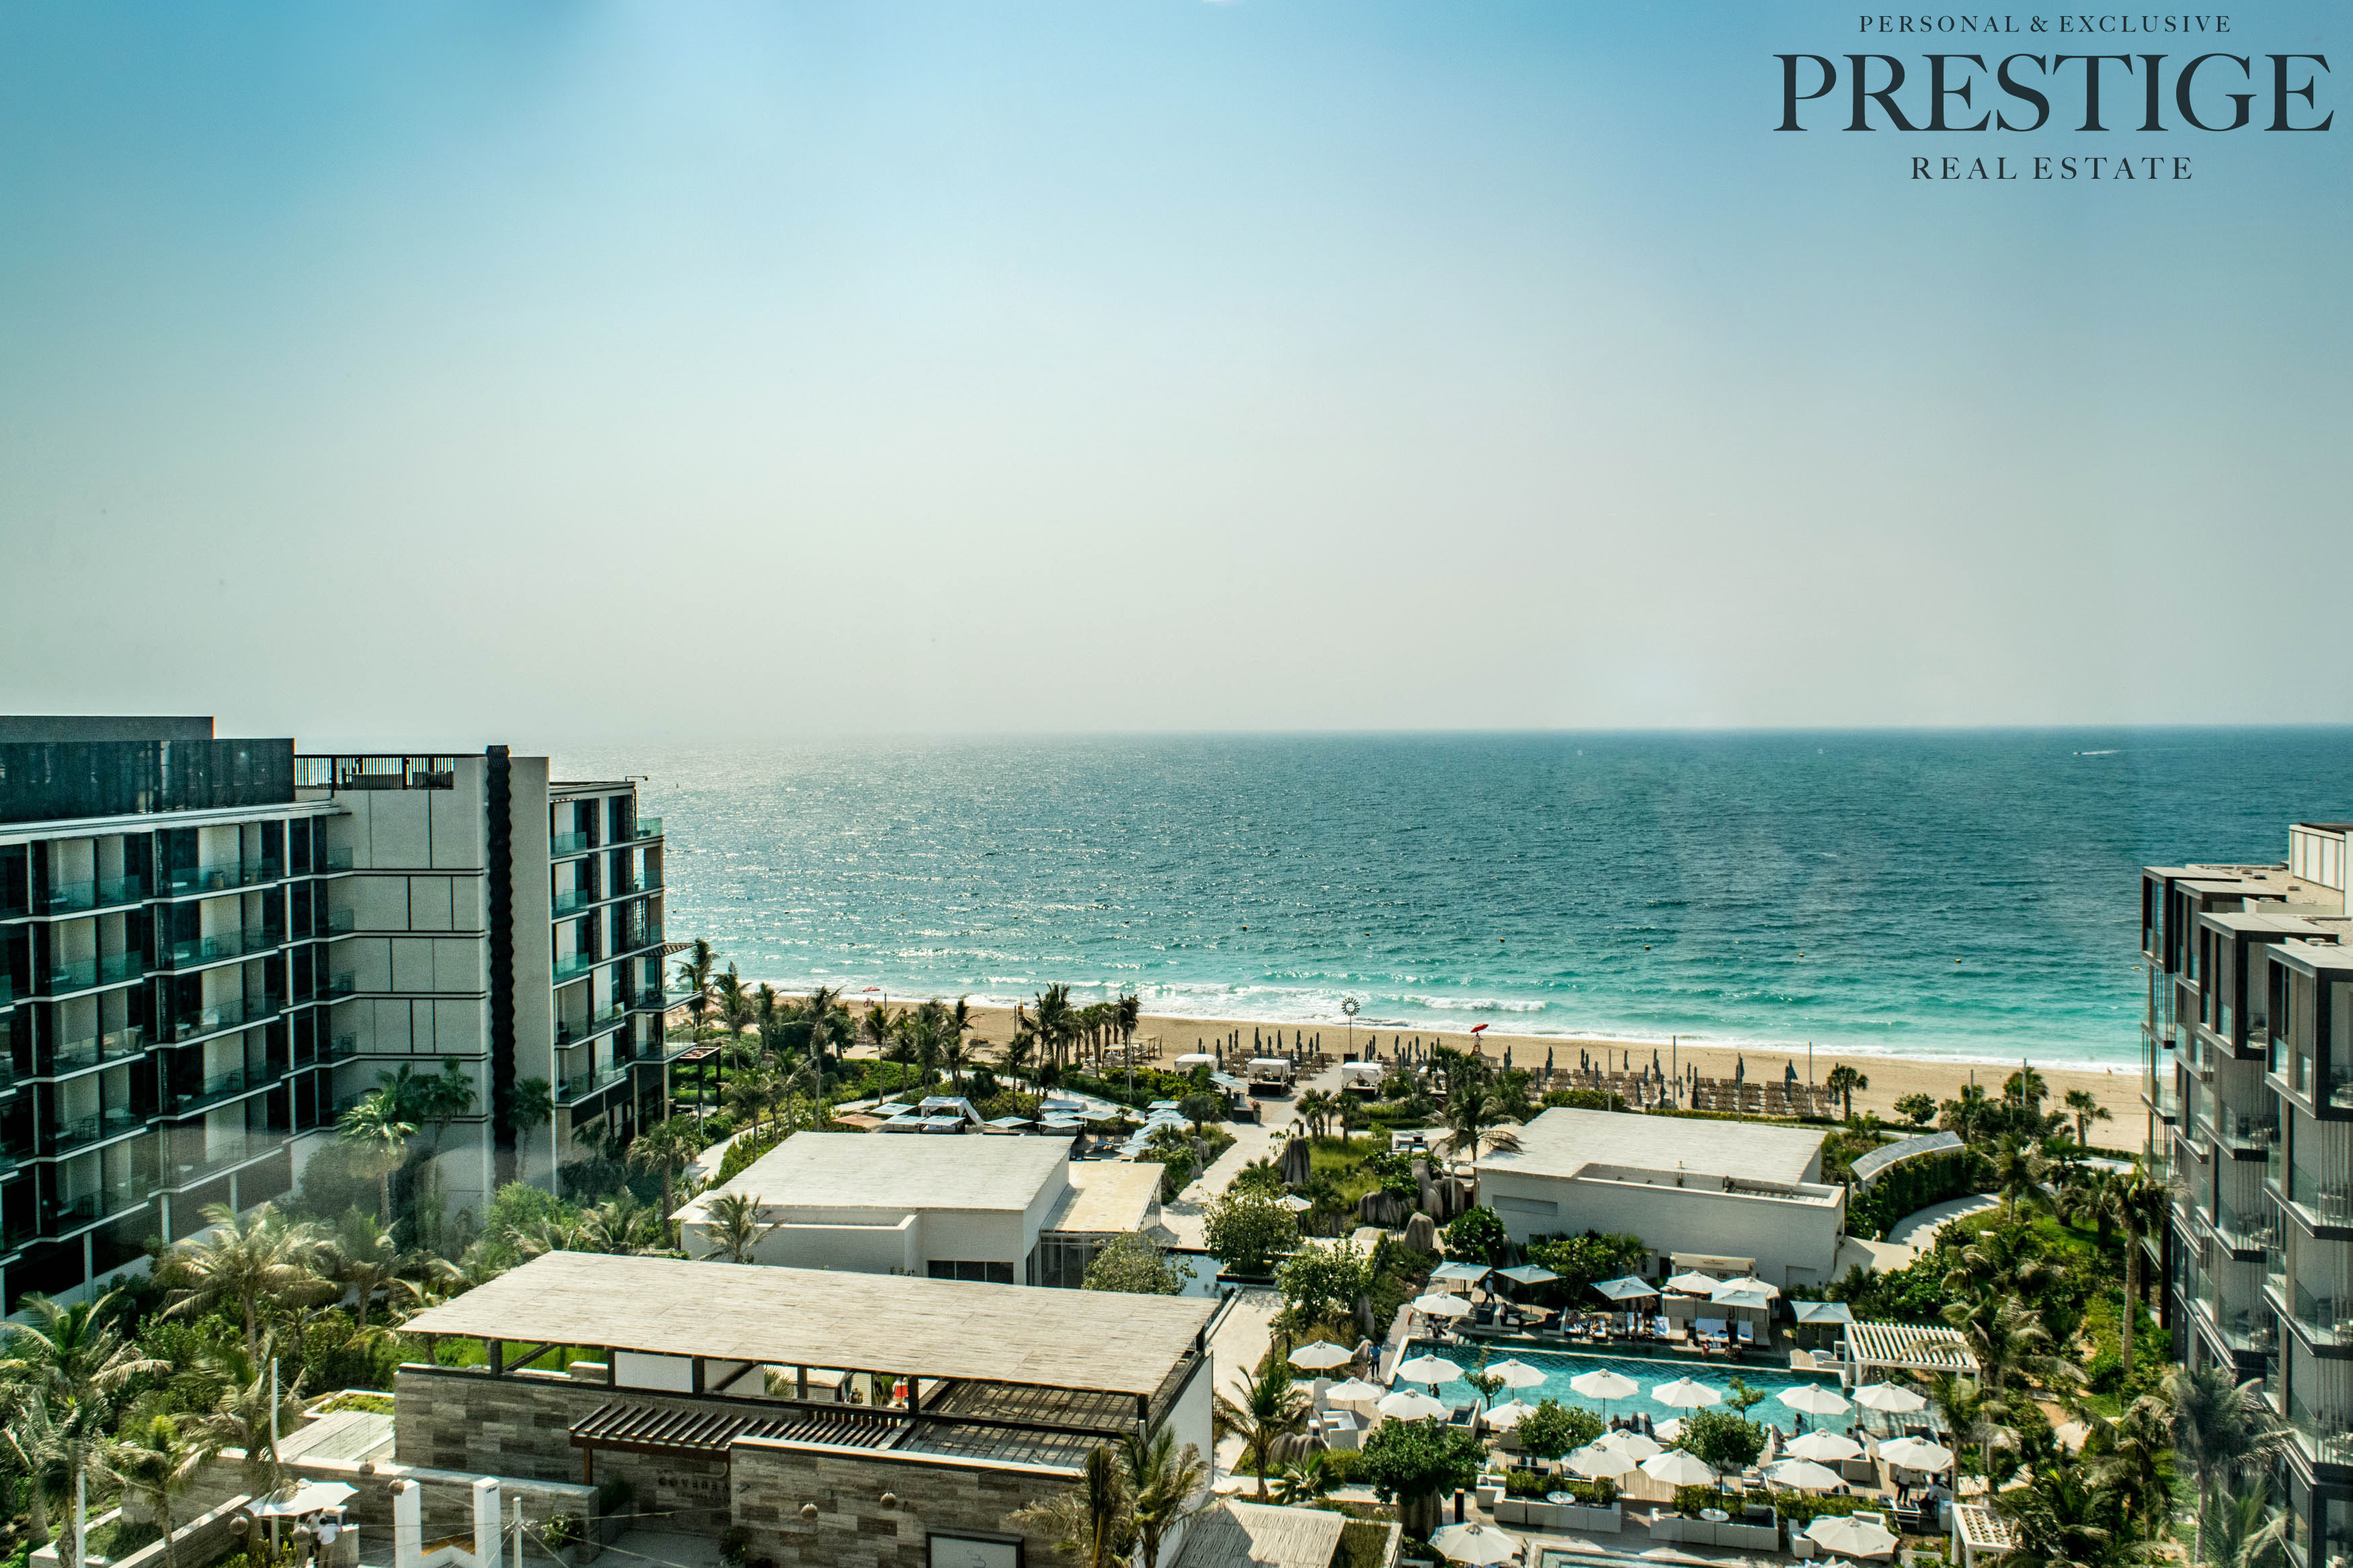 penthouse-immaculate-ocean-view-all-bill-inclusive